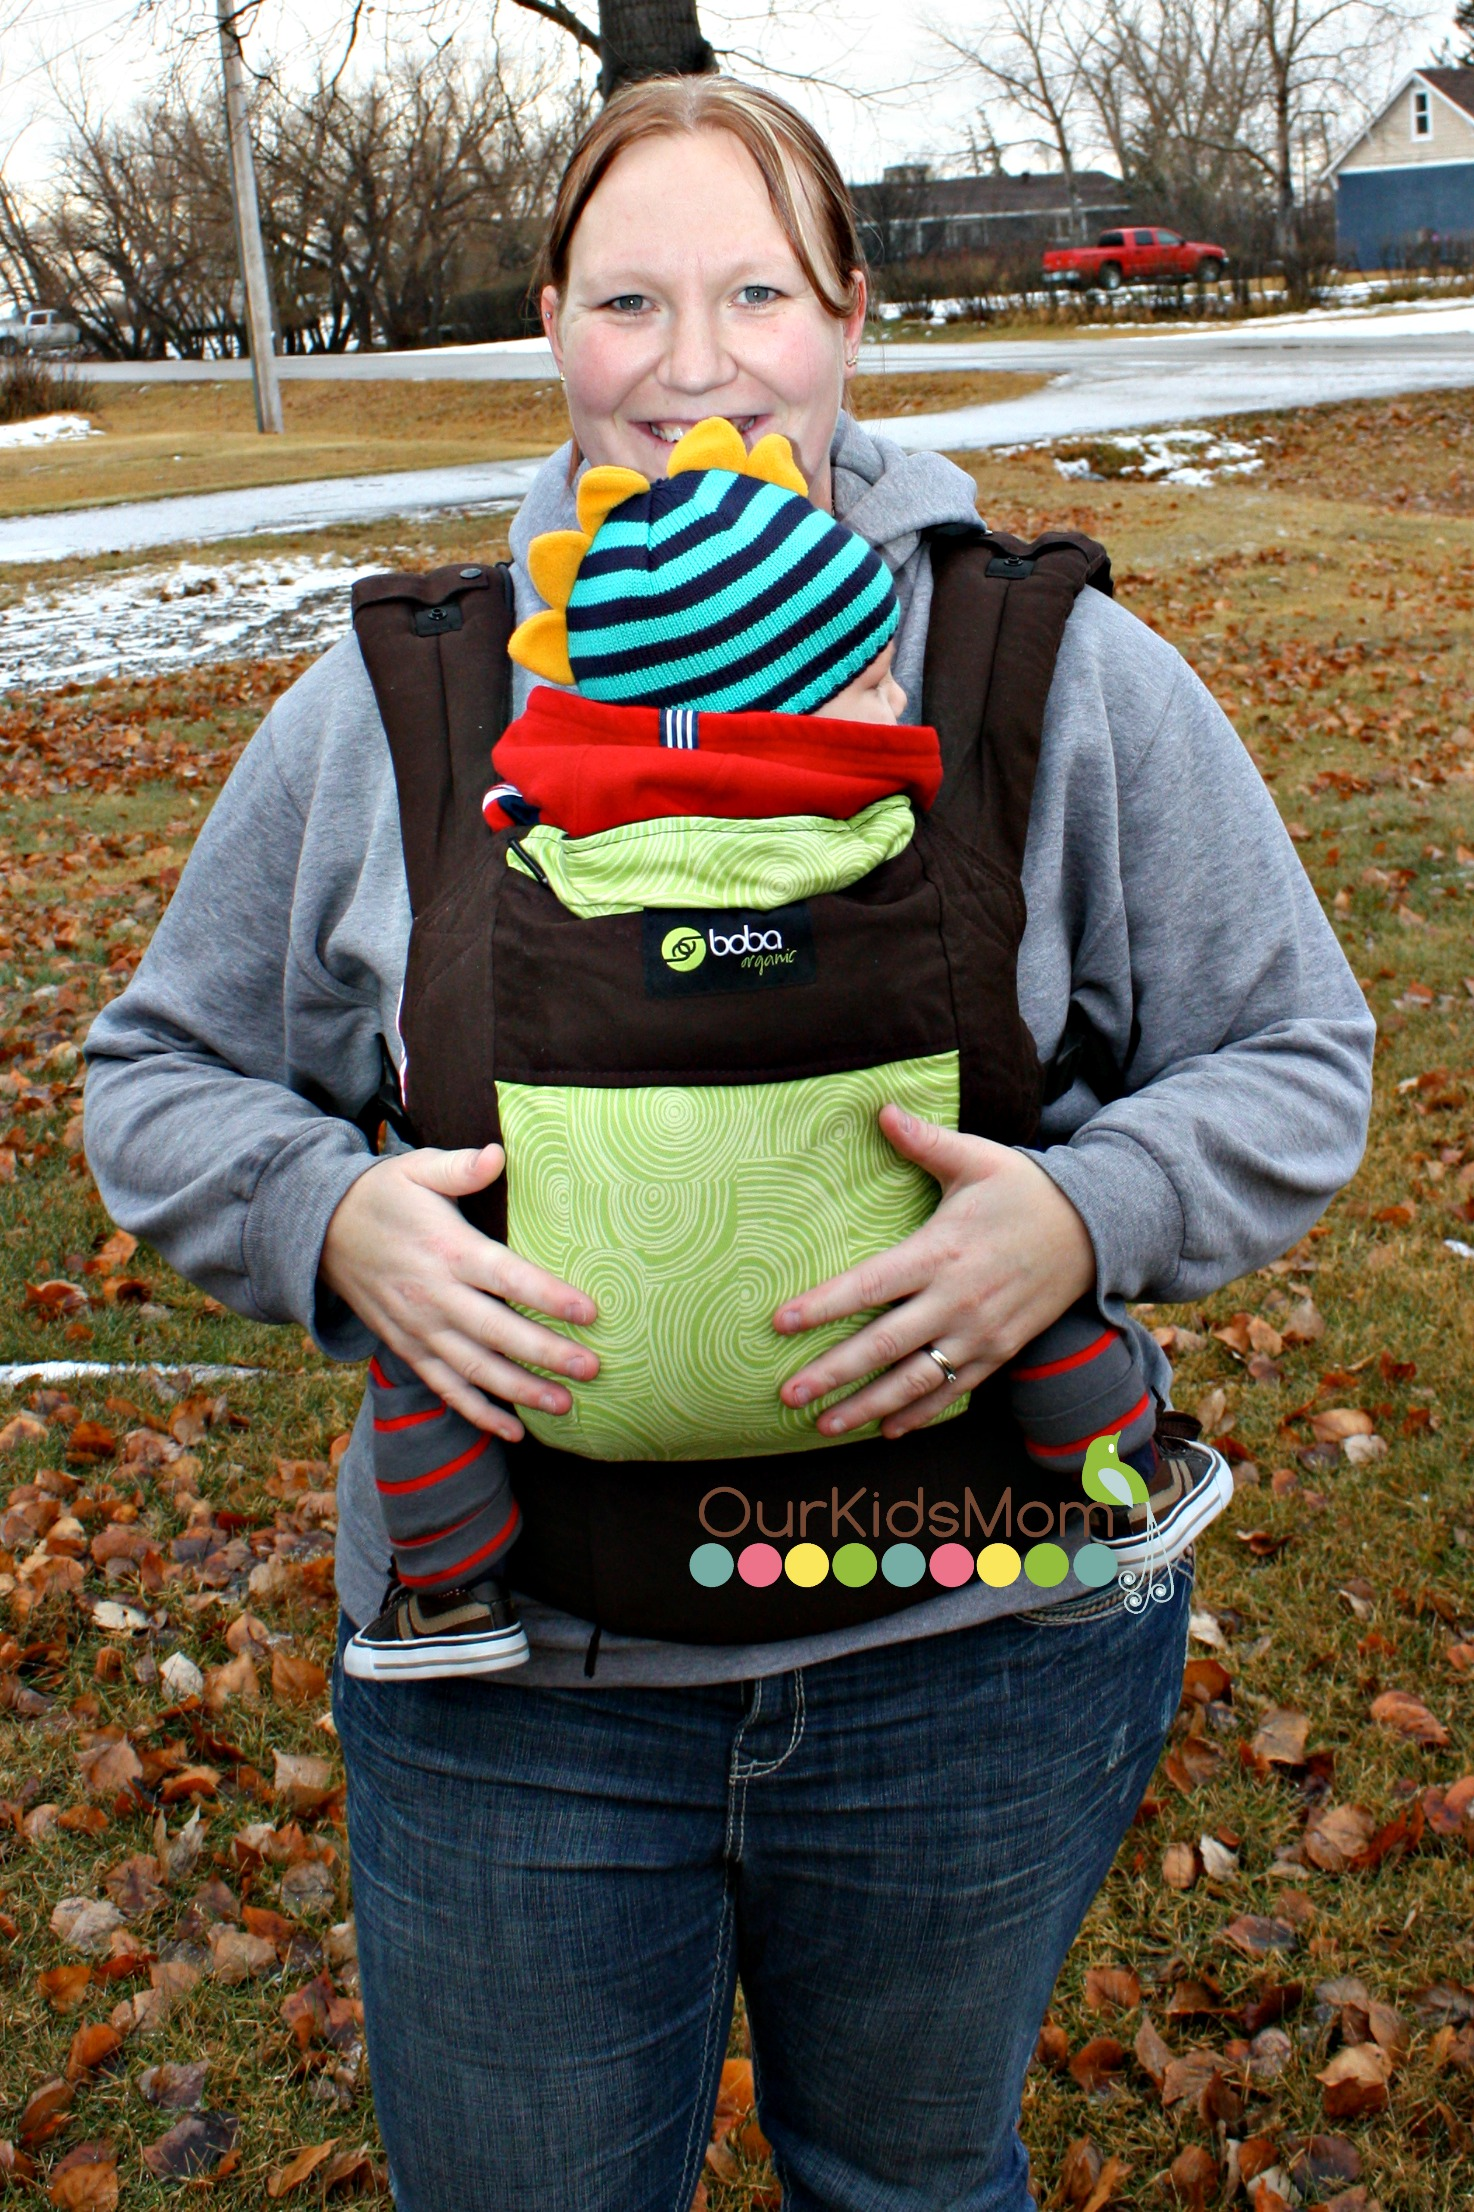 3db4b973ea8 The Boba Carrier can be used as a front carry or a back carry for older  children. I use the front carry with my 4 month old and I will proudly say  ...